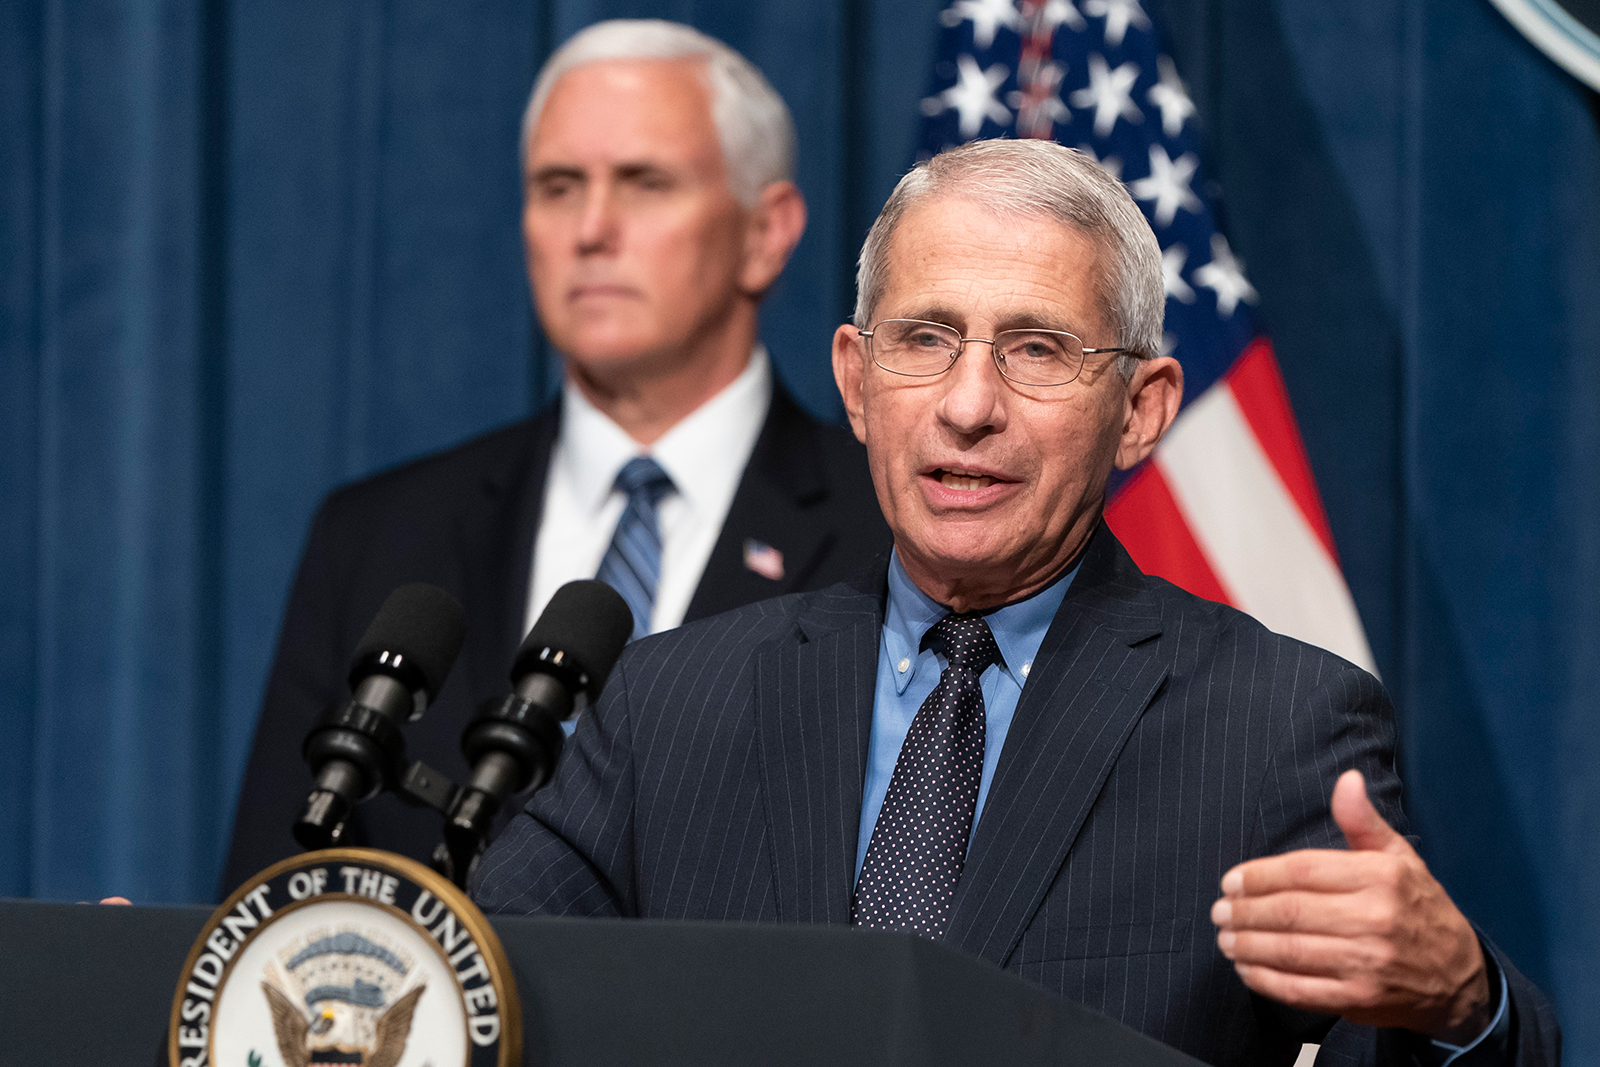 Dr. Anthony Fauci speaks at the White House coronavirus task force briefing at the Department of Health and Human Services in Washington, DC on June 26.